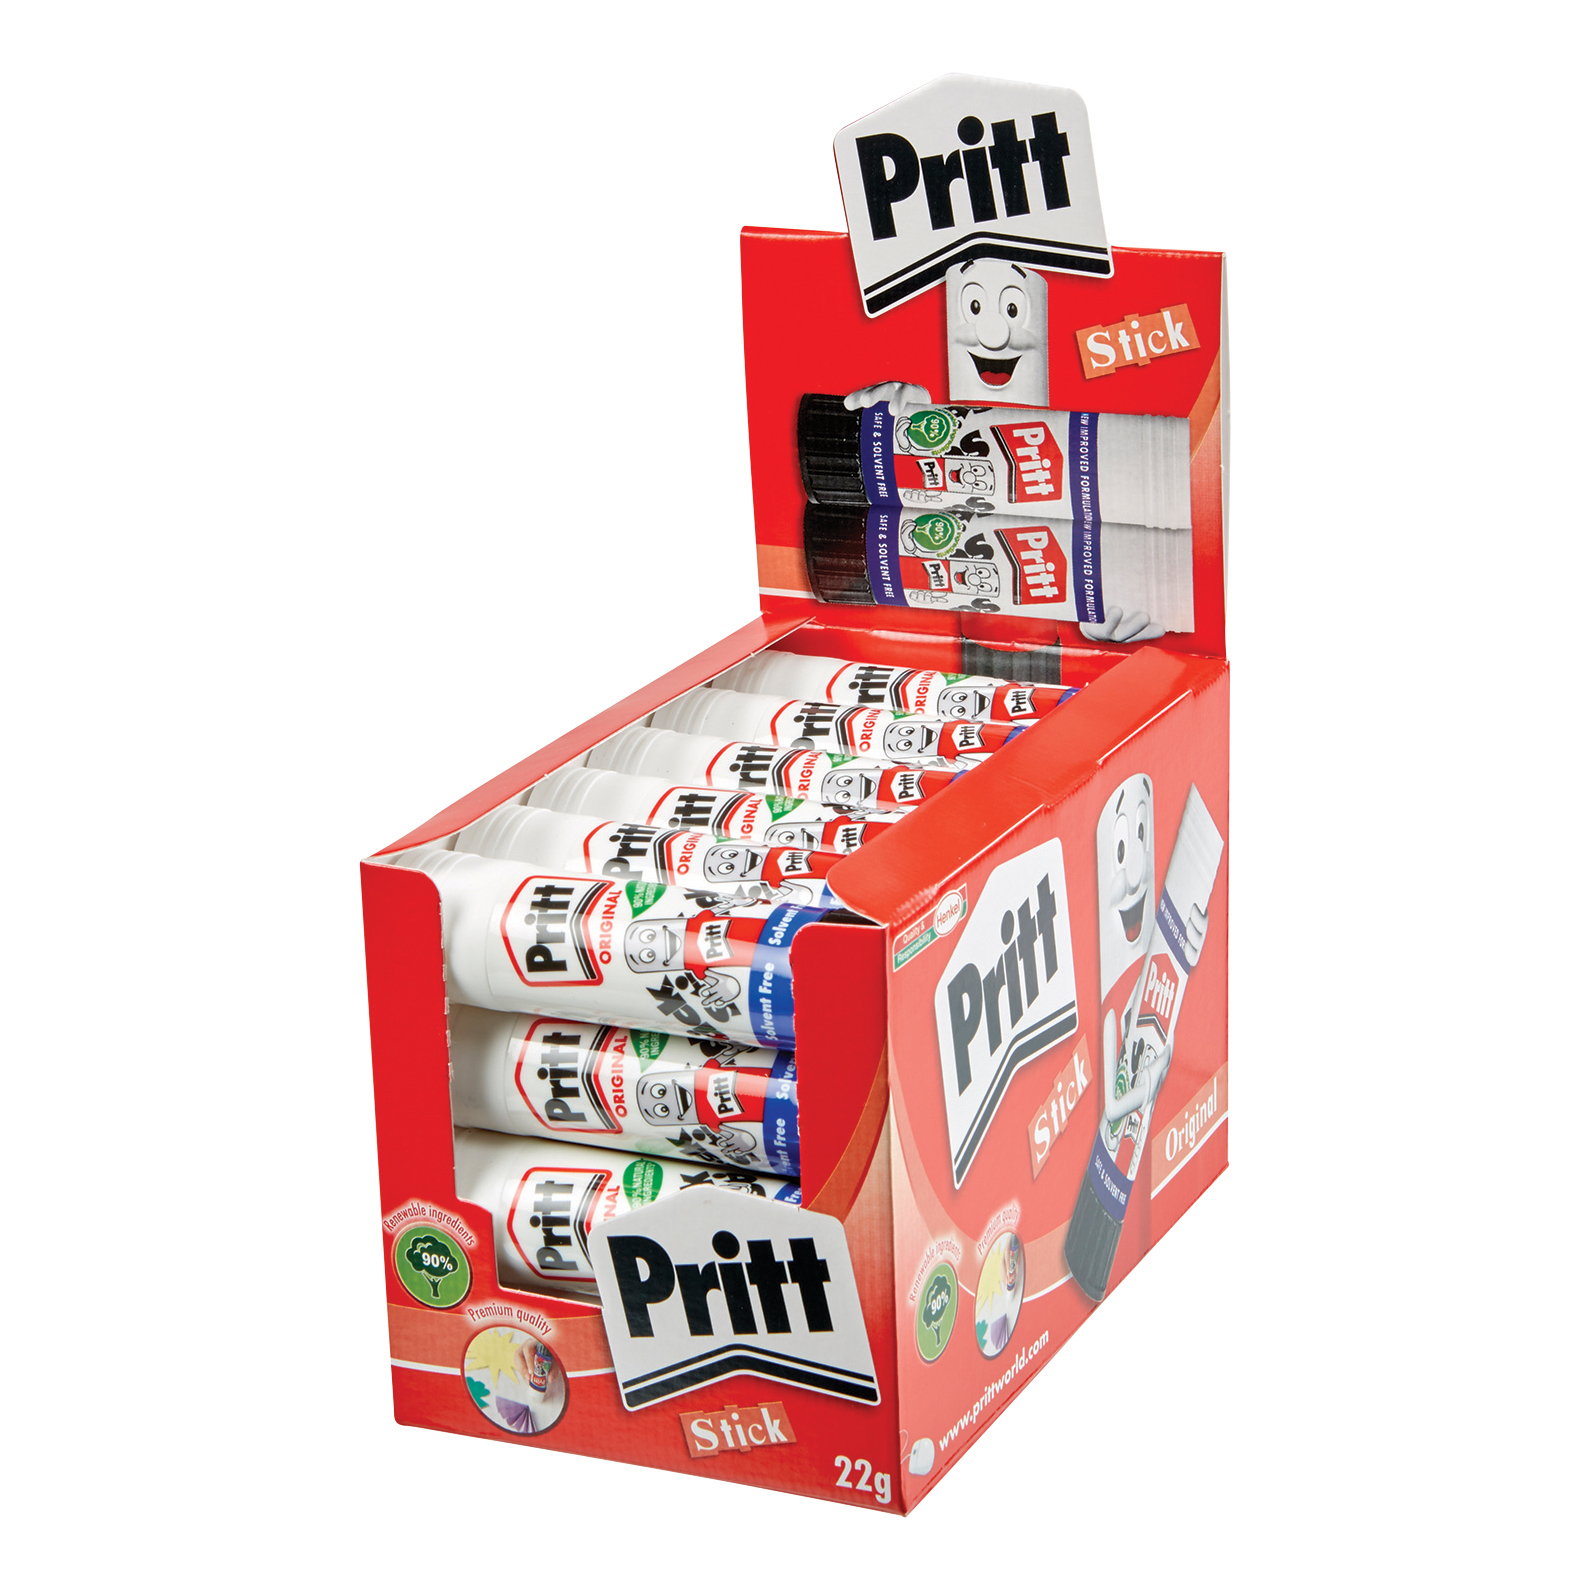 Pritt Stick Glue Solid Washable Non-toxic Medium 22g Ref 1564150 Pack 24